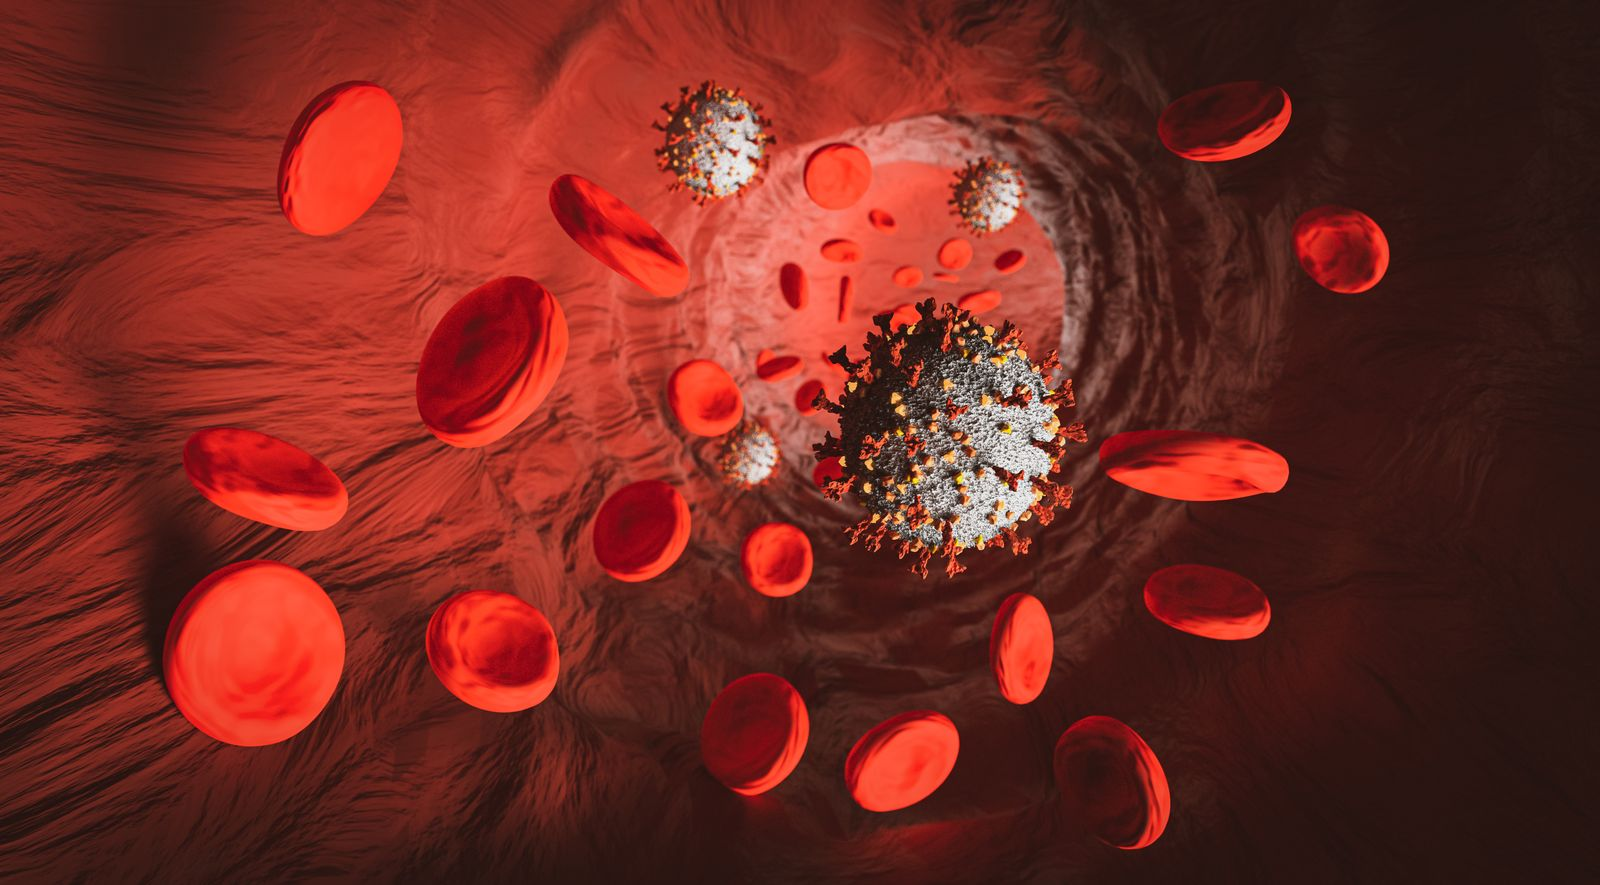 Coronavirus in a vein with blood cells